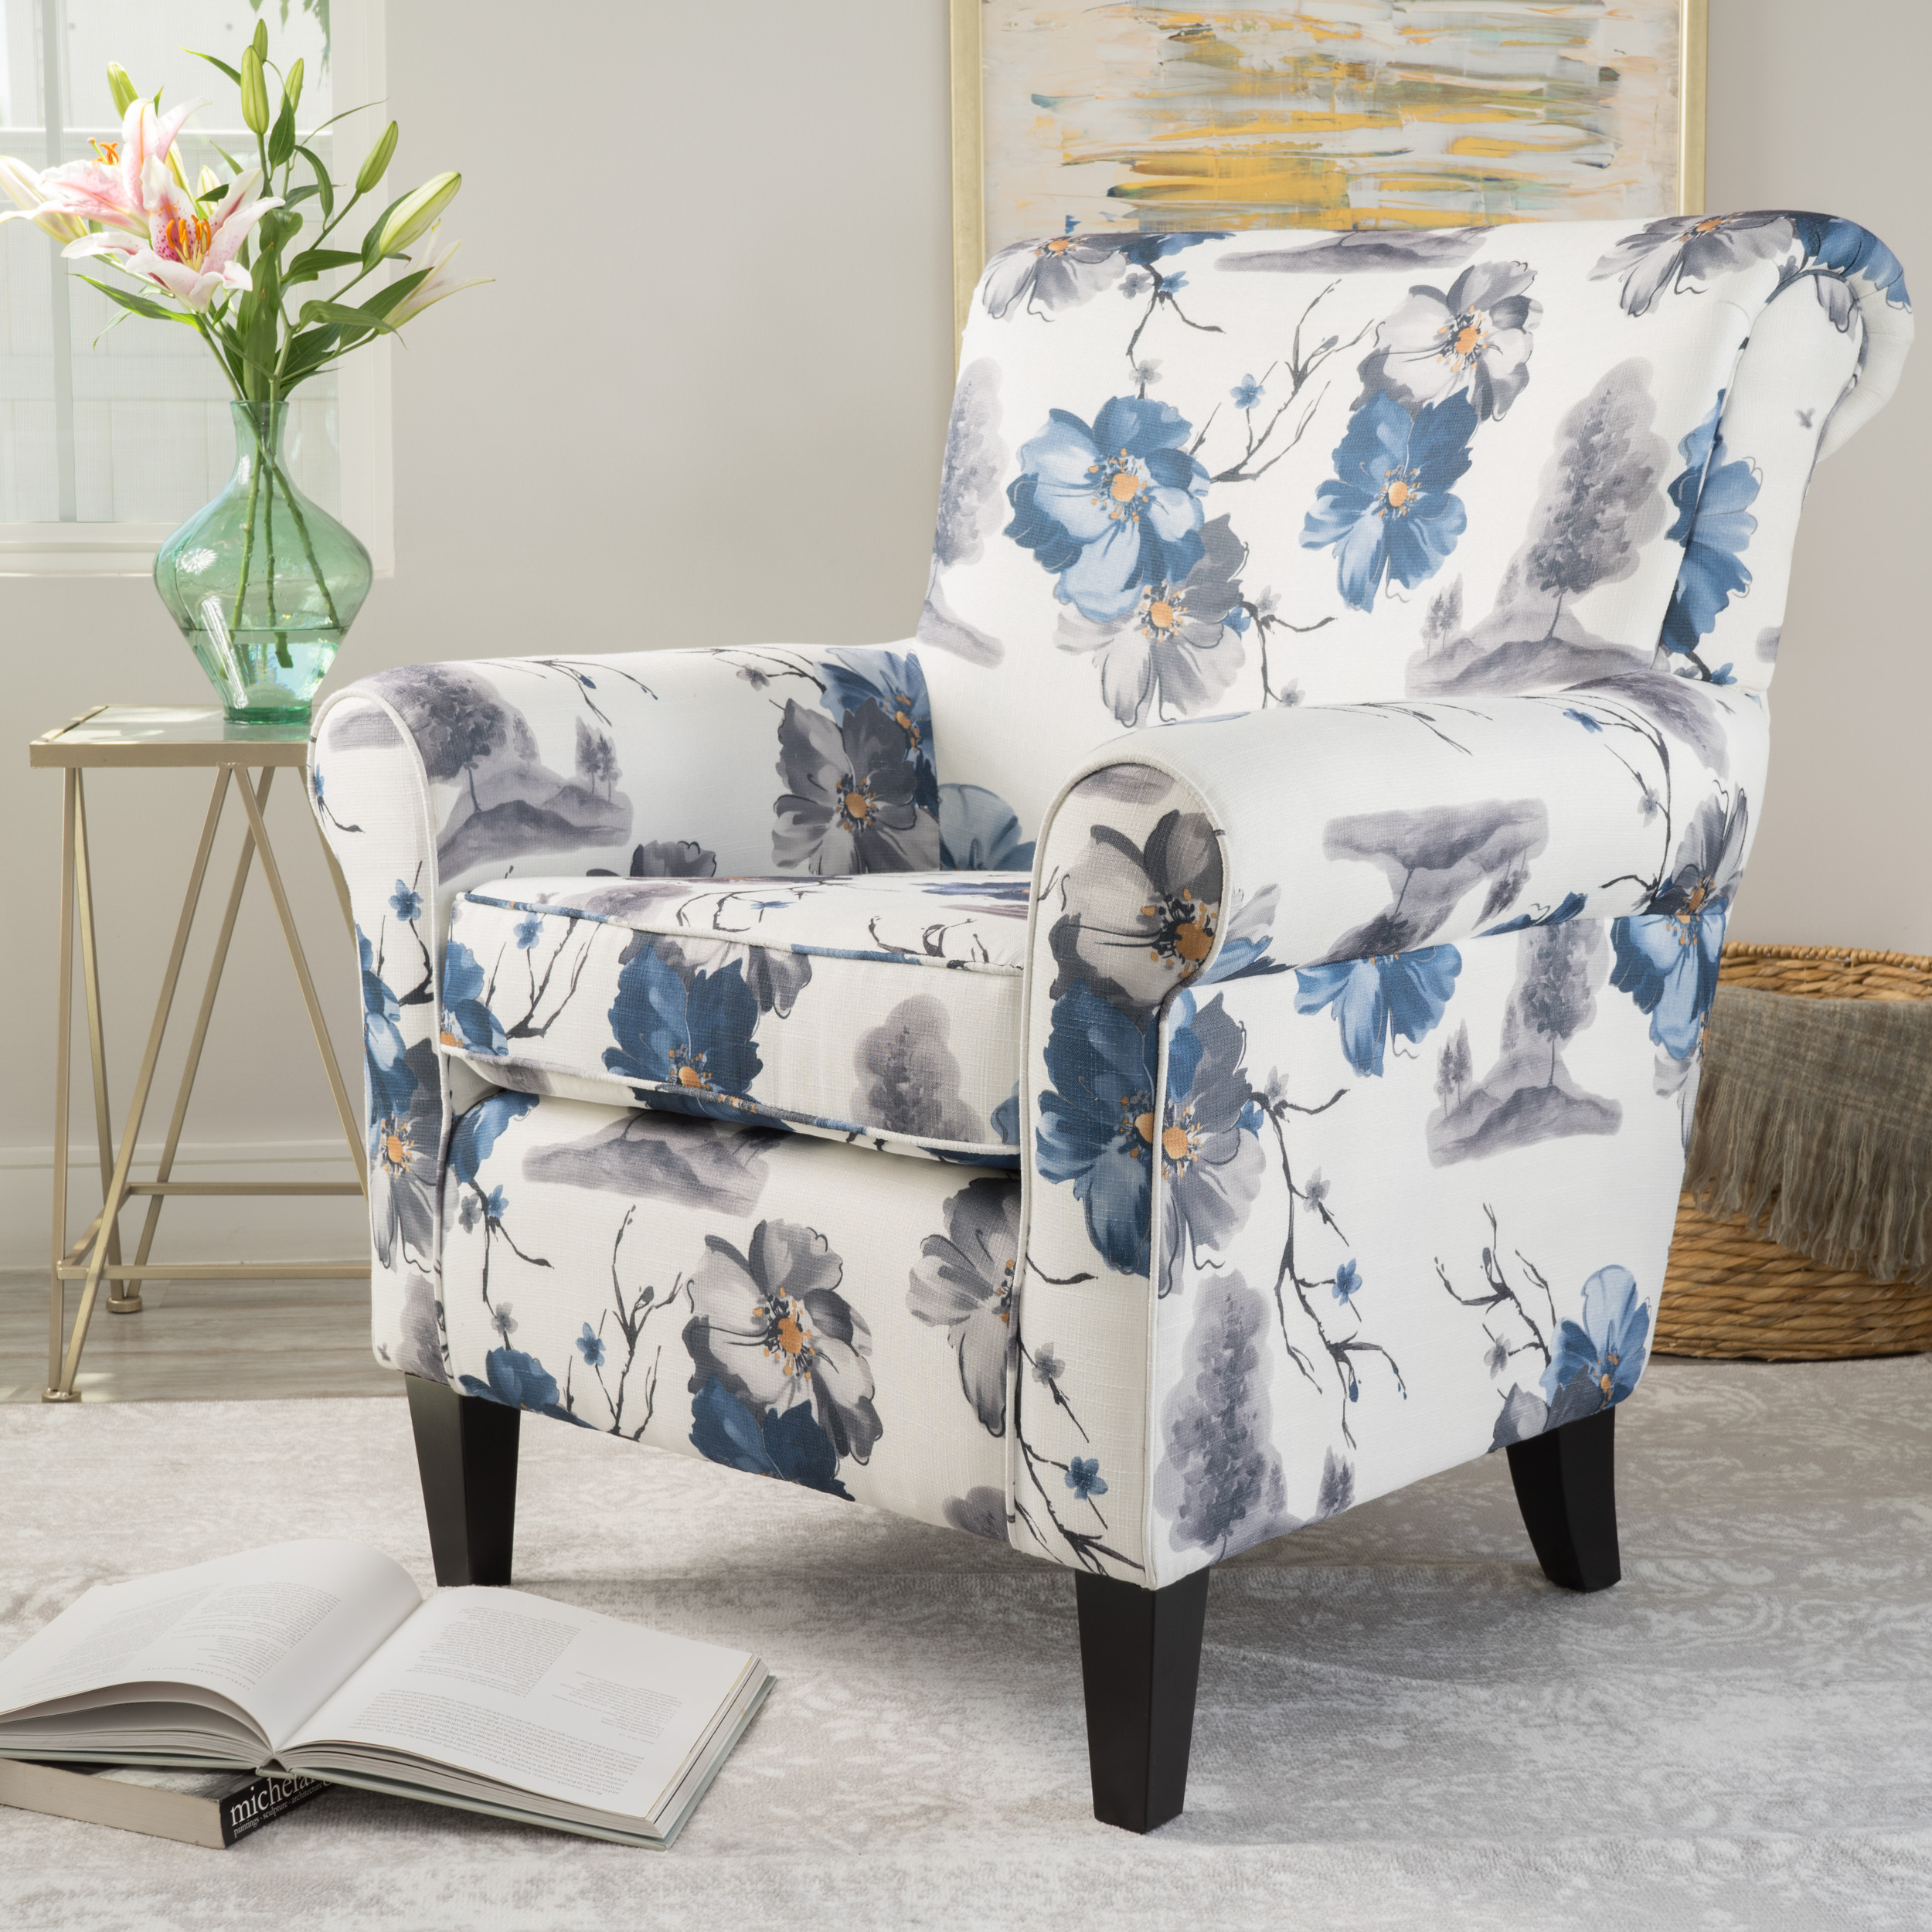 . Details about Blue   White Floral Pattern Modern Fabric Club Chair Lounge  Living Room Bedroom